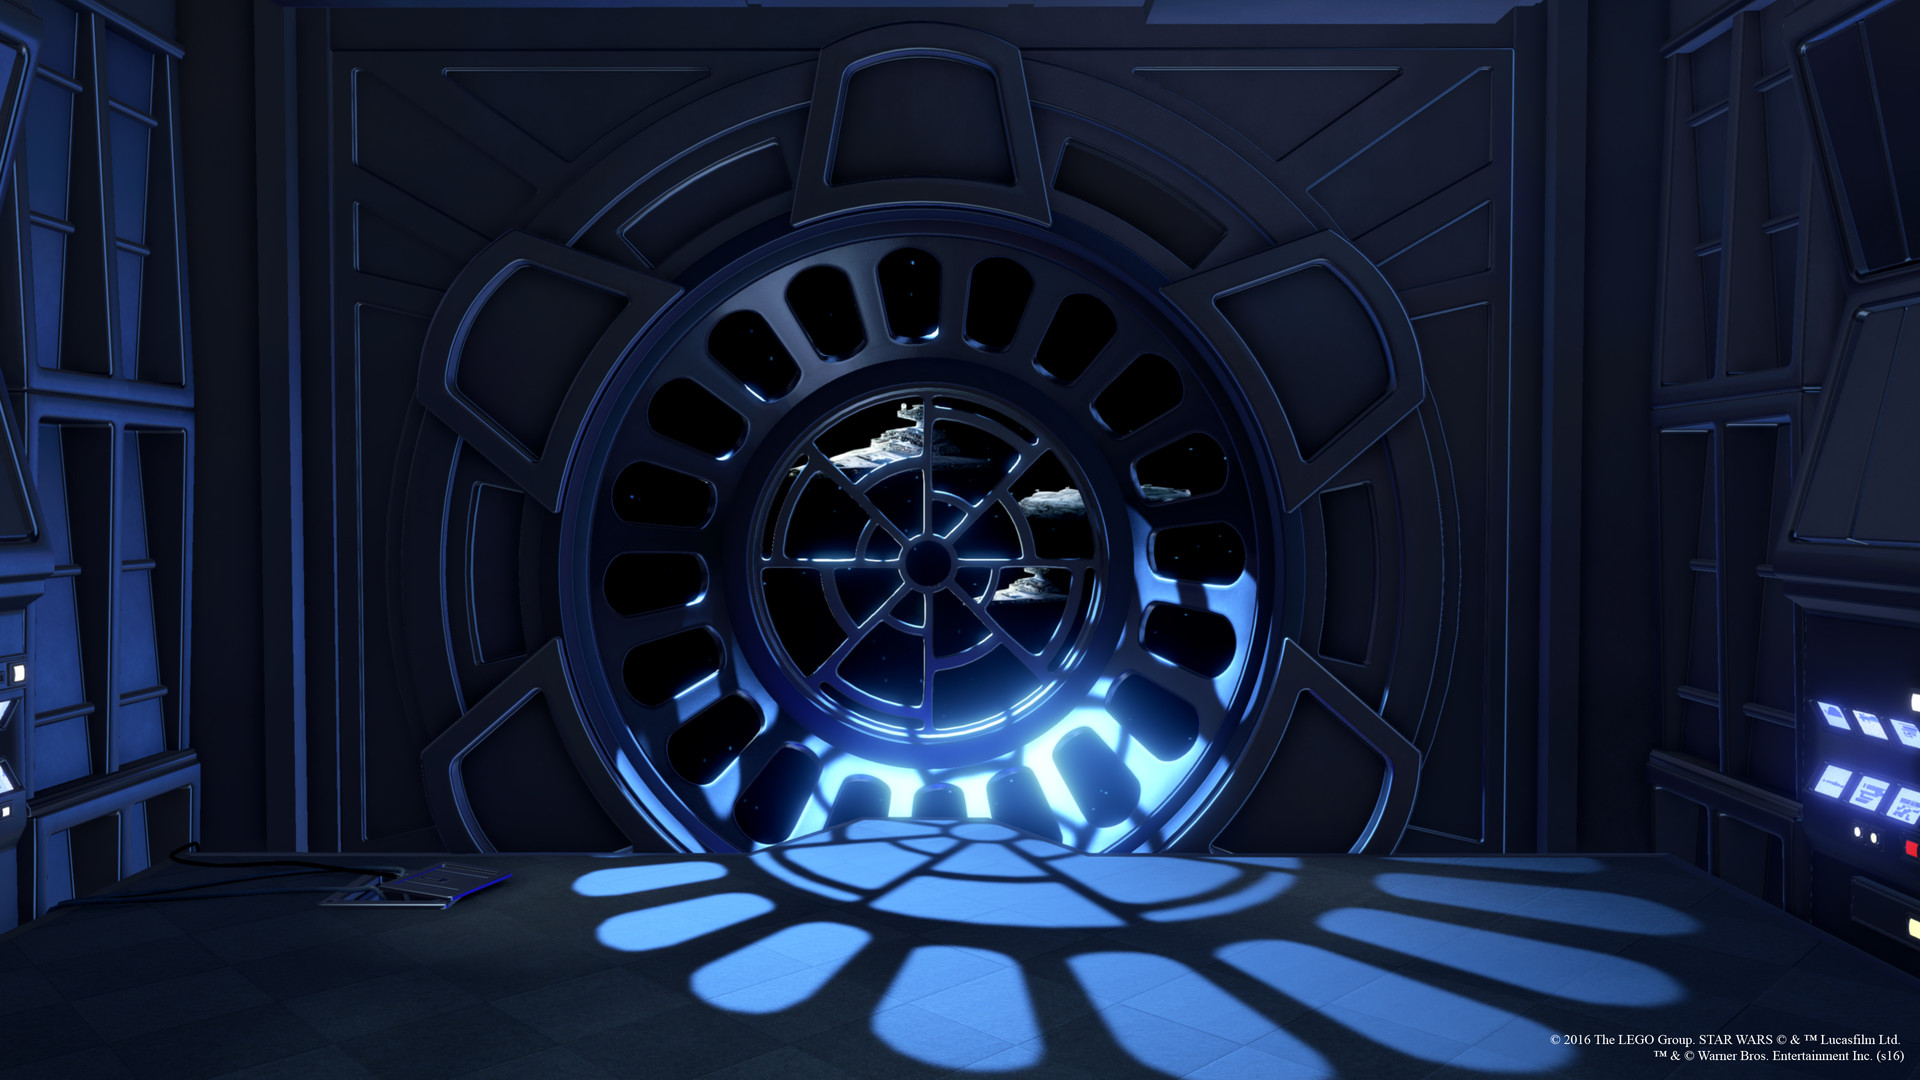 Emperor S Throne Room Star Wars